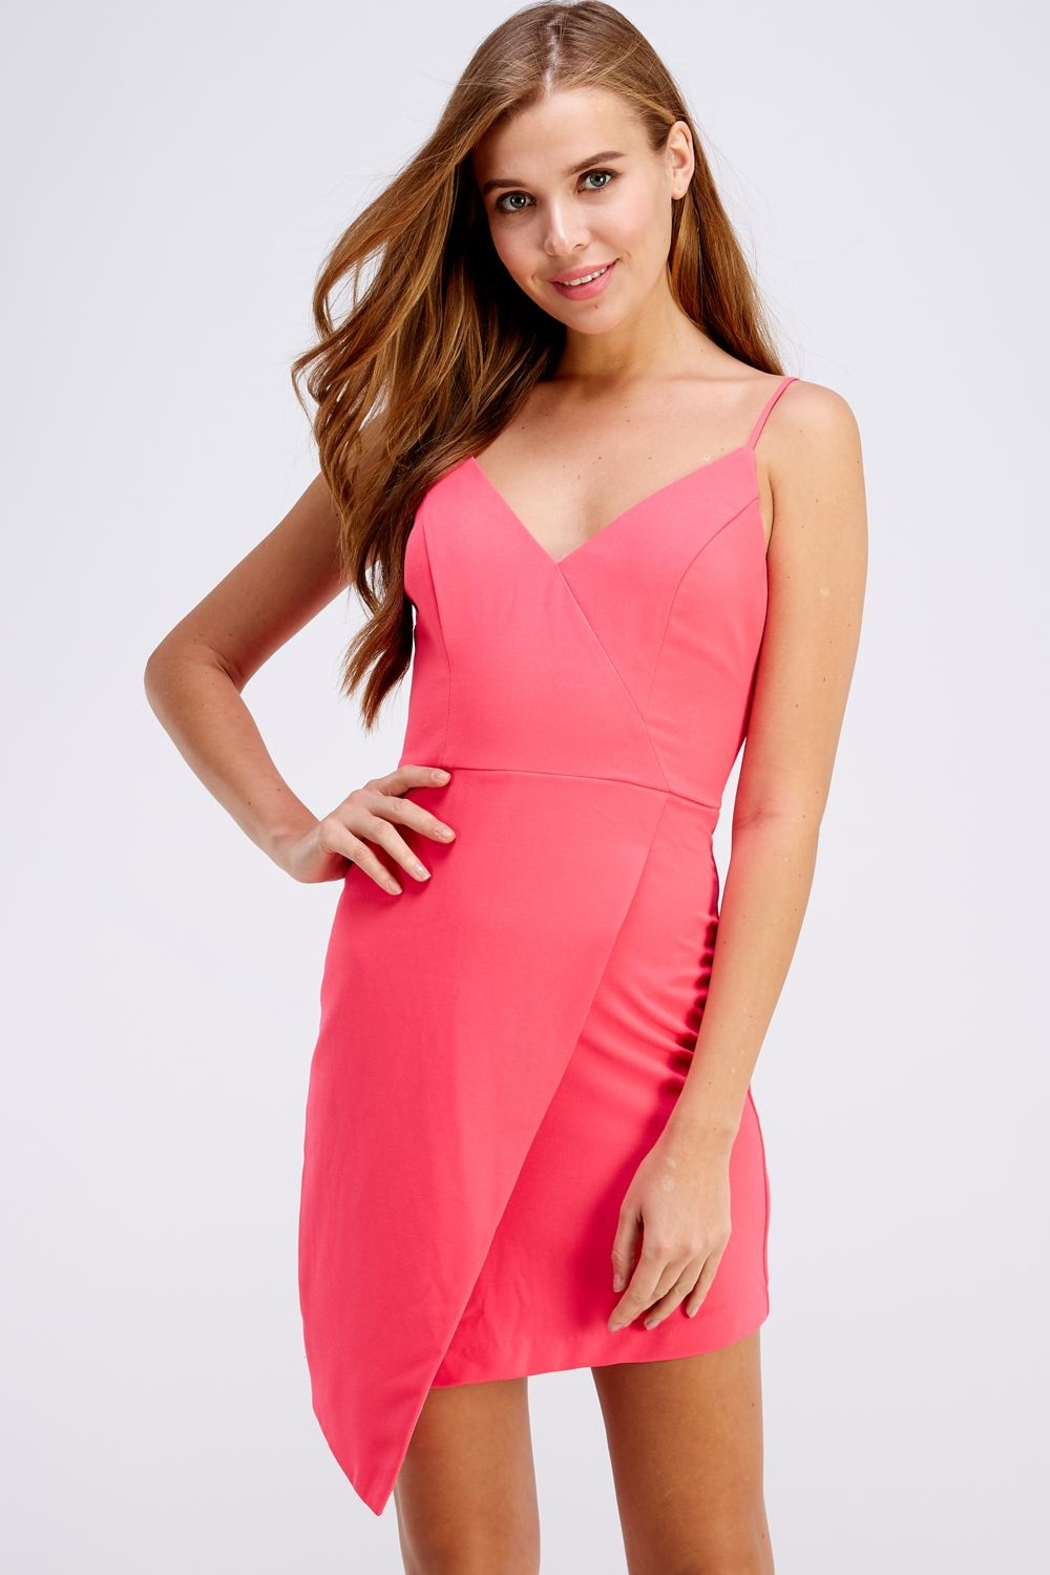 Do & Be Pink Mini Dress - Main Image